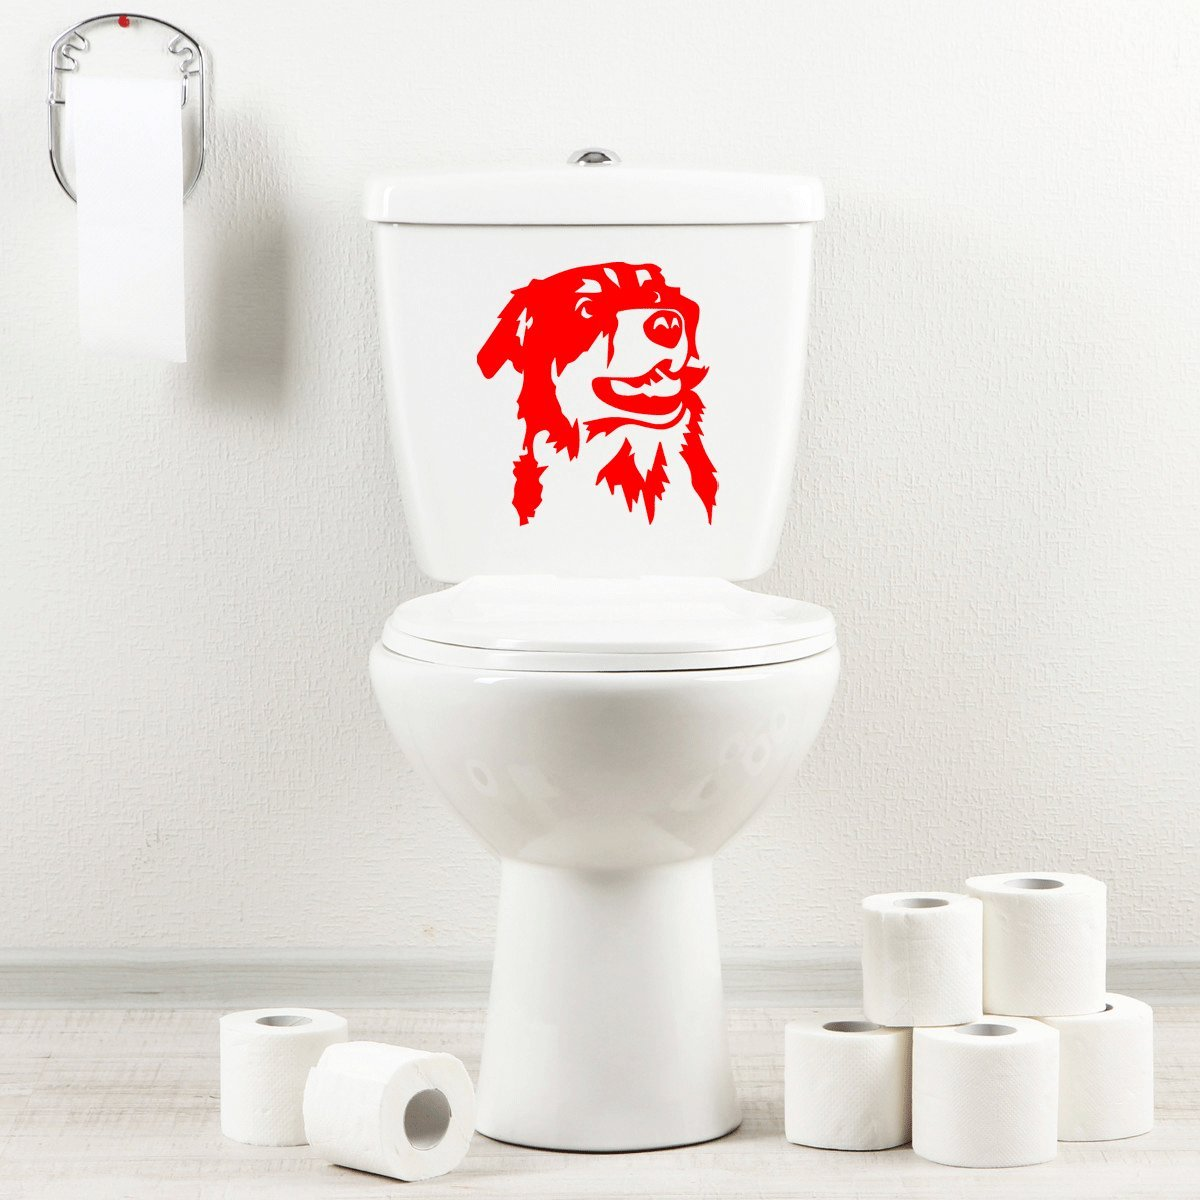 StickAny Bathroom Decal Series Australian shepherd 3 Sticker for Toilet Bowl, Bath, Seat (Blue)